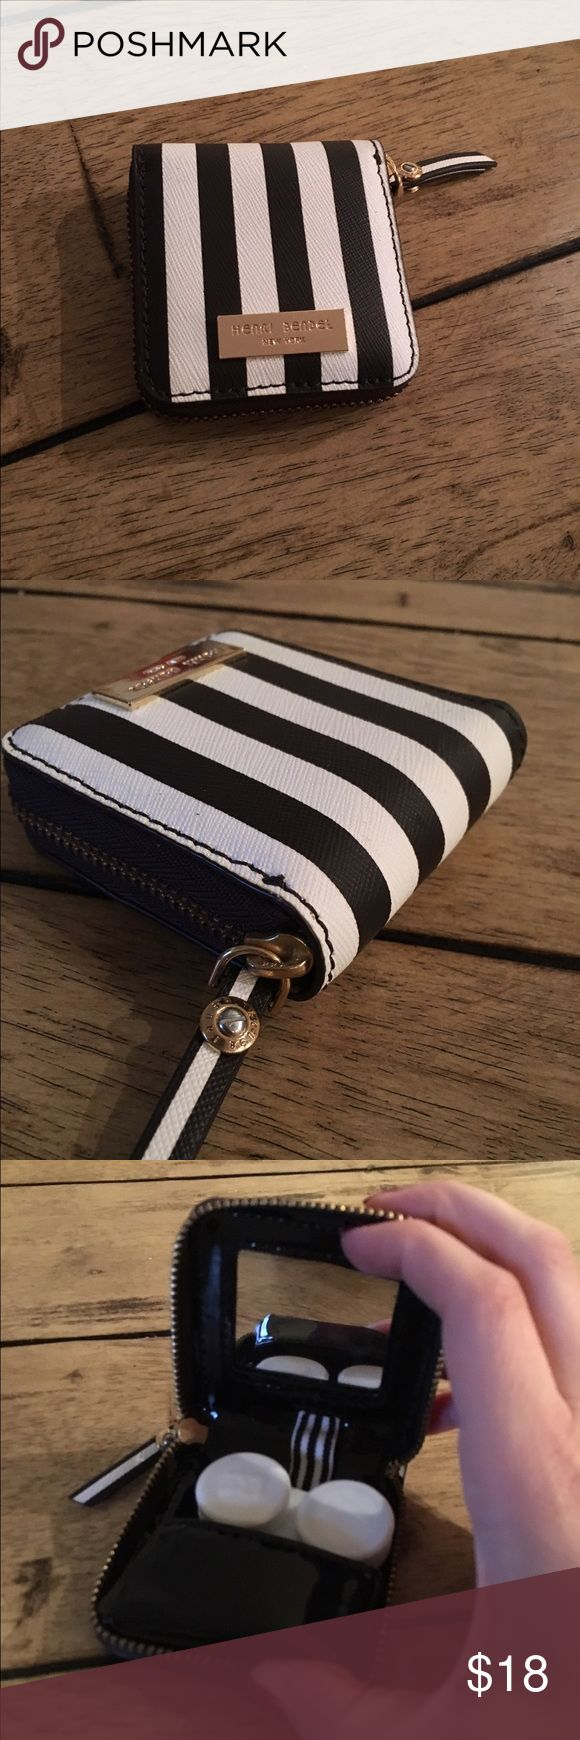 Henri Bendel Contact Lens Case brand new! Brand new, never used - carry your contacts in style! And prevent from losing them :) henri bendel Accessories Glasses